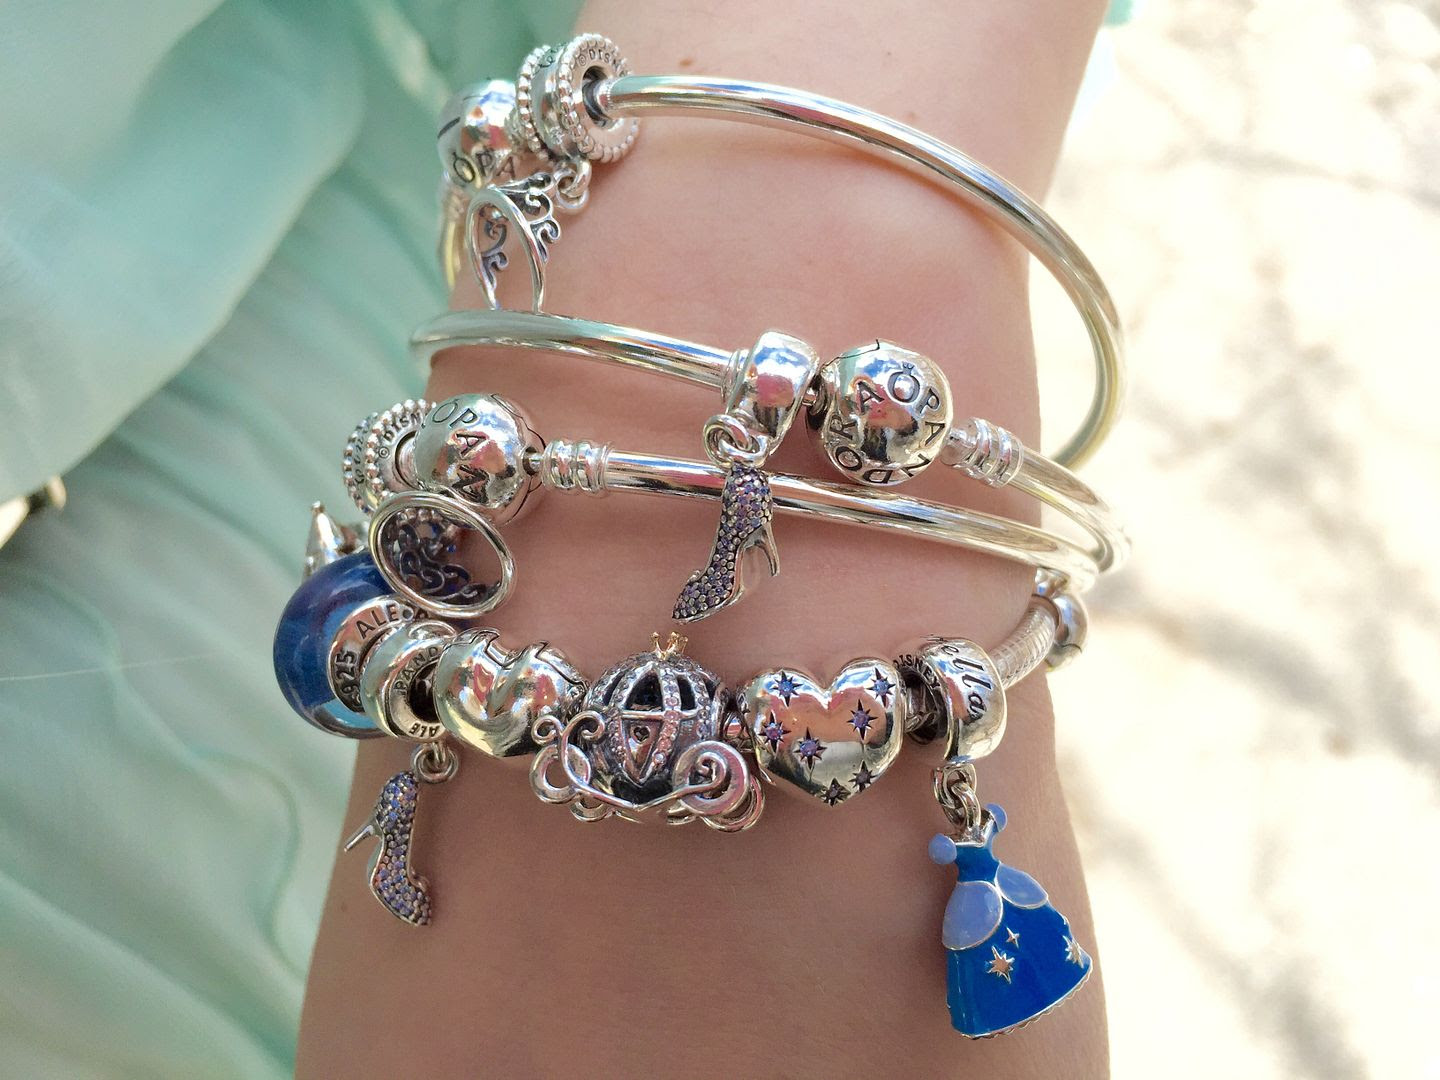 photo pandora-disney-beckerman blog- cinderella-2_zpsbkdunlub.jpg